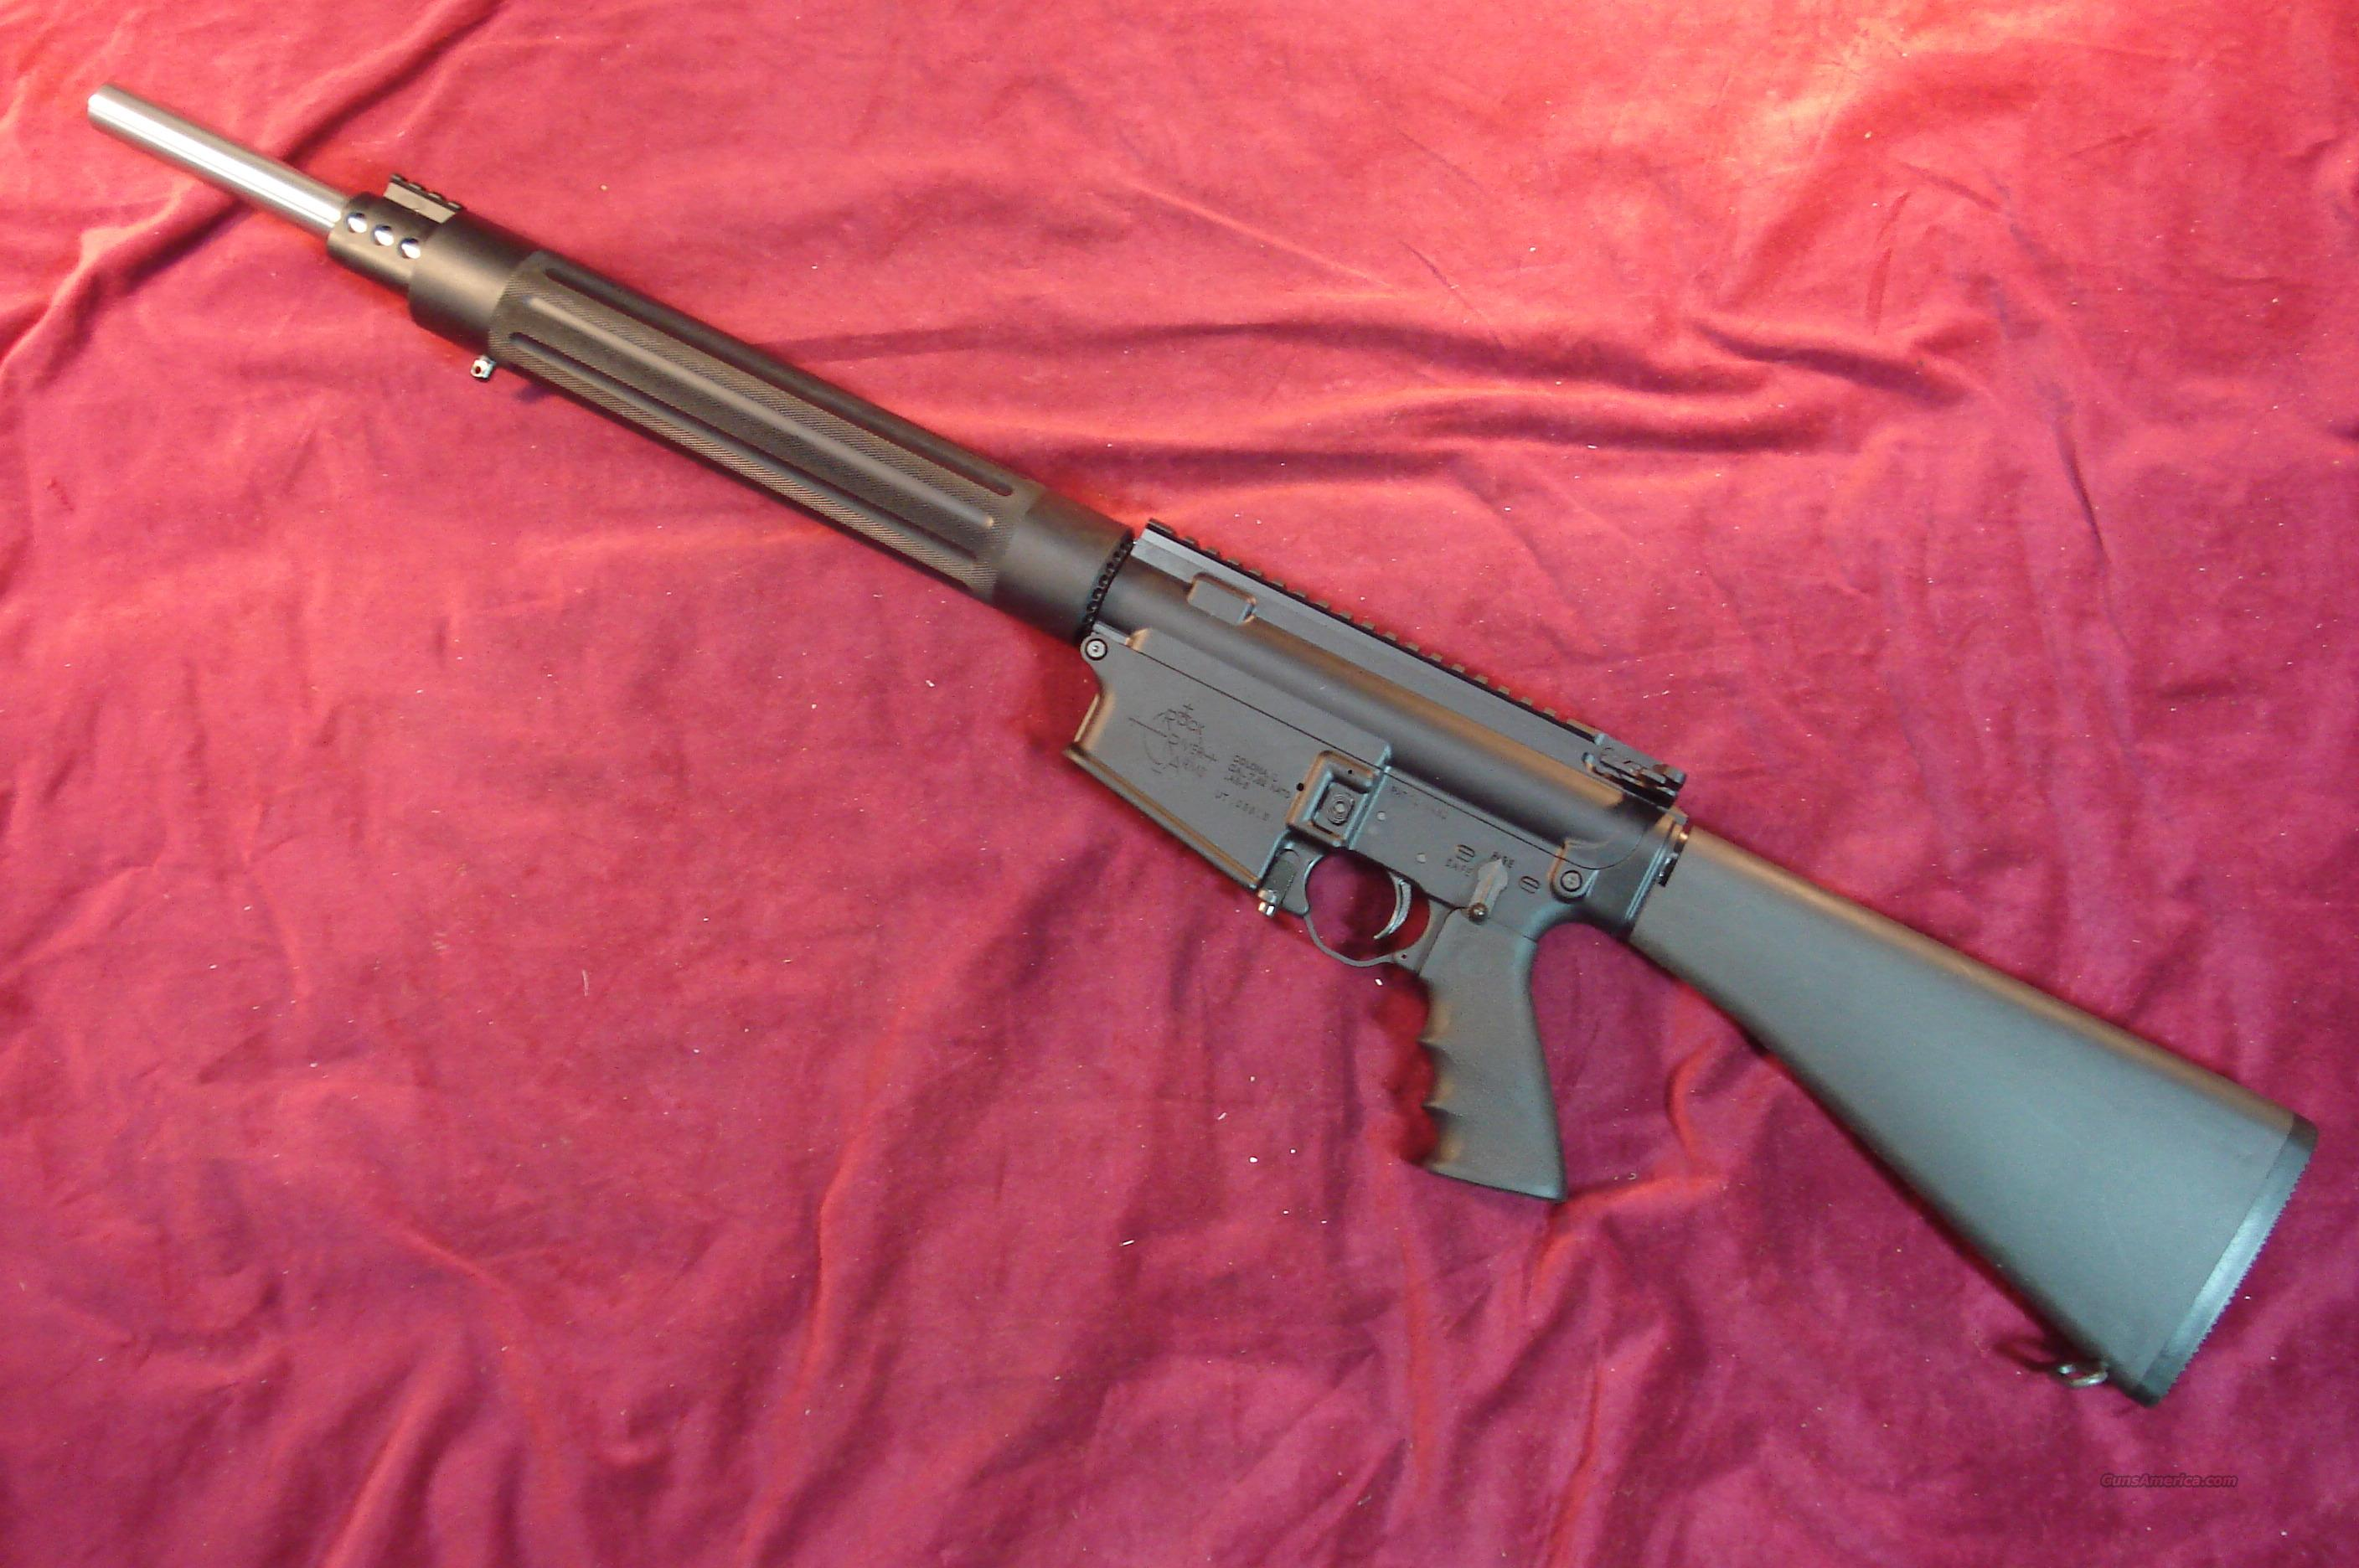 "ROCK RIVER 308 CAL 20"" HEAVY STAINLESS BARREL AR15 NEW   Guns > Rifles > Rock River Arms Rifles"